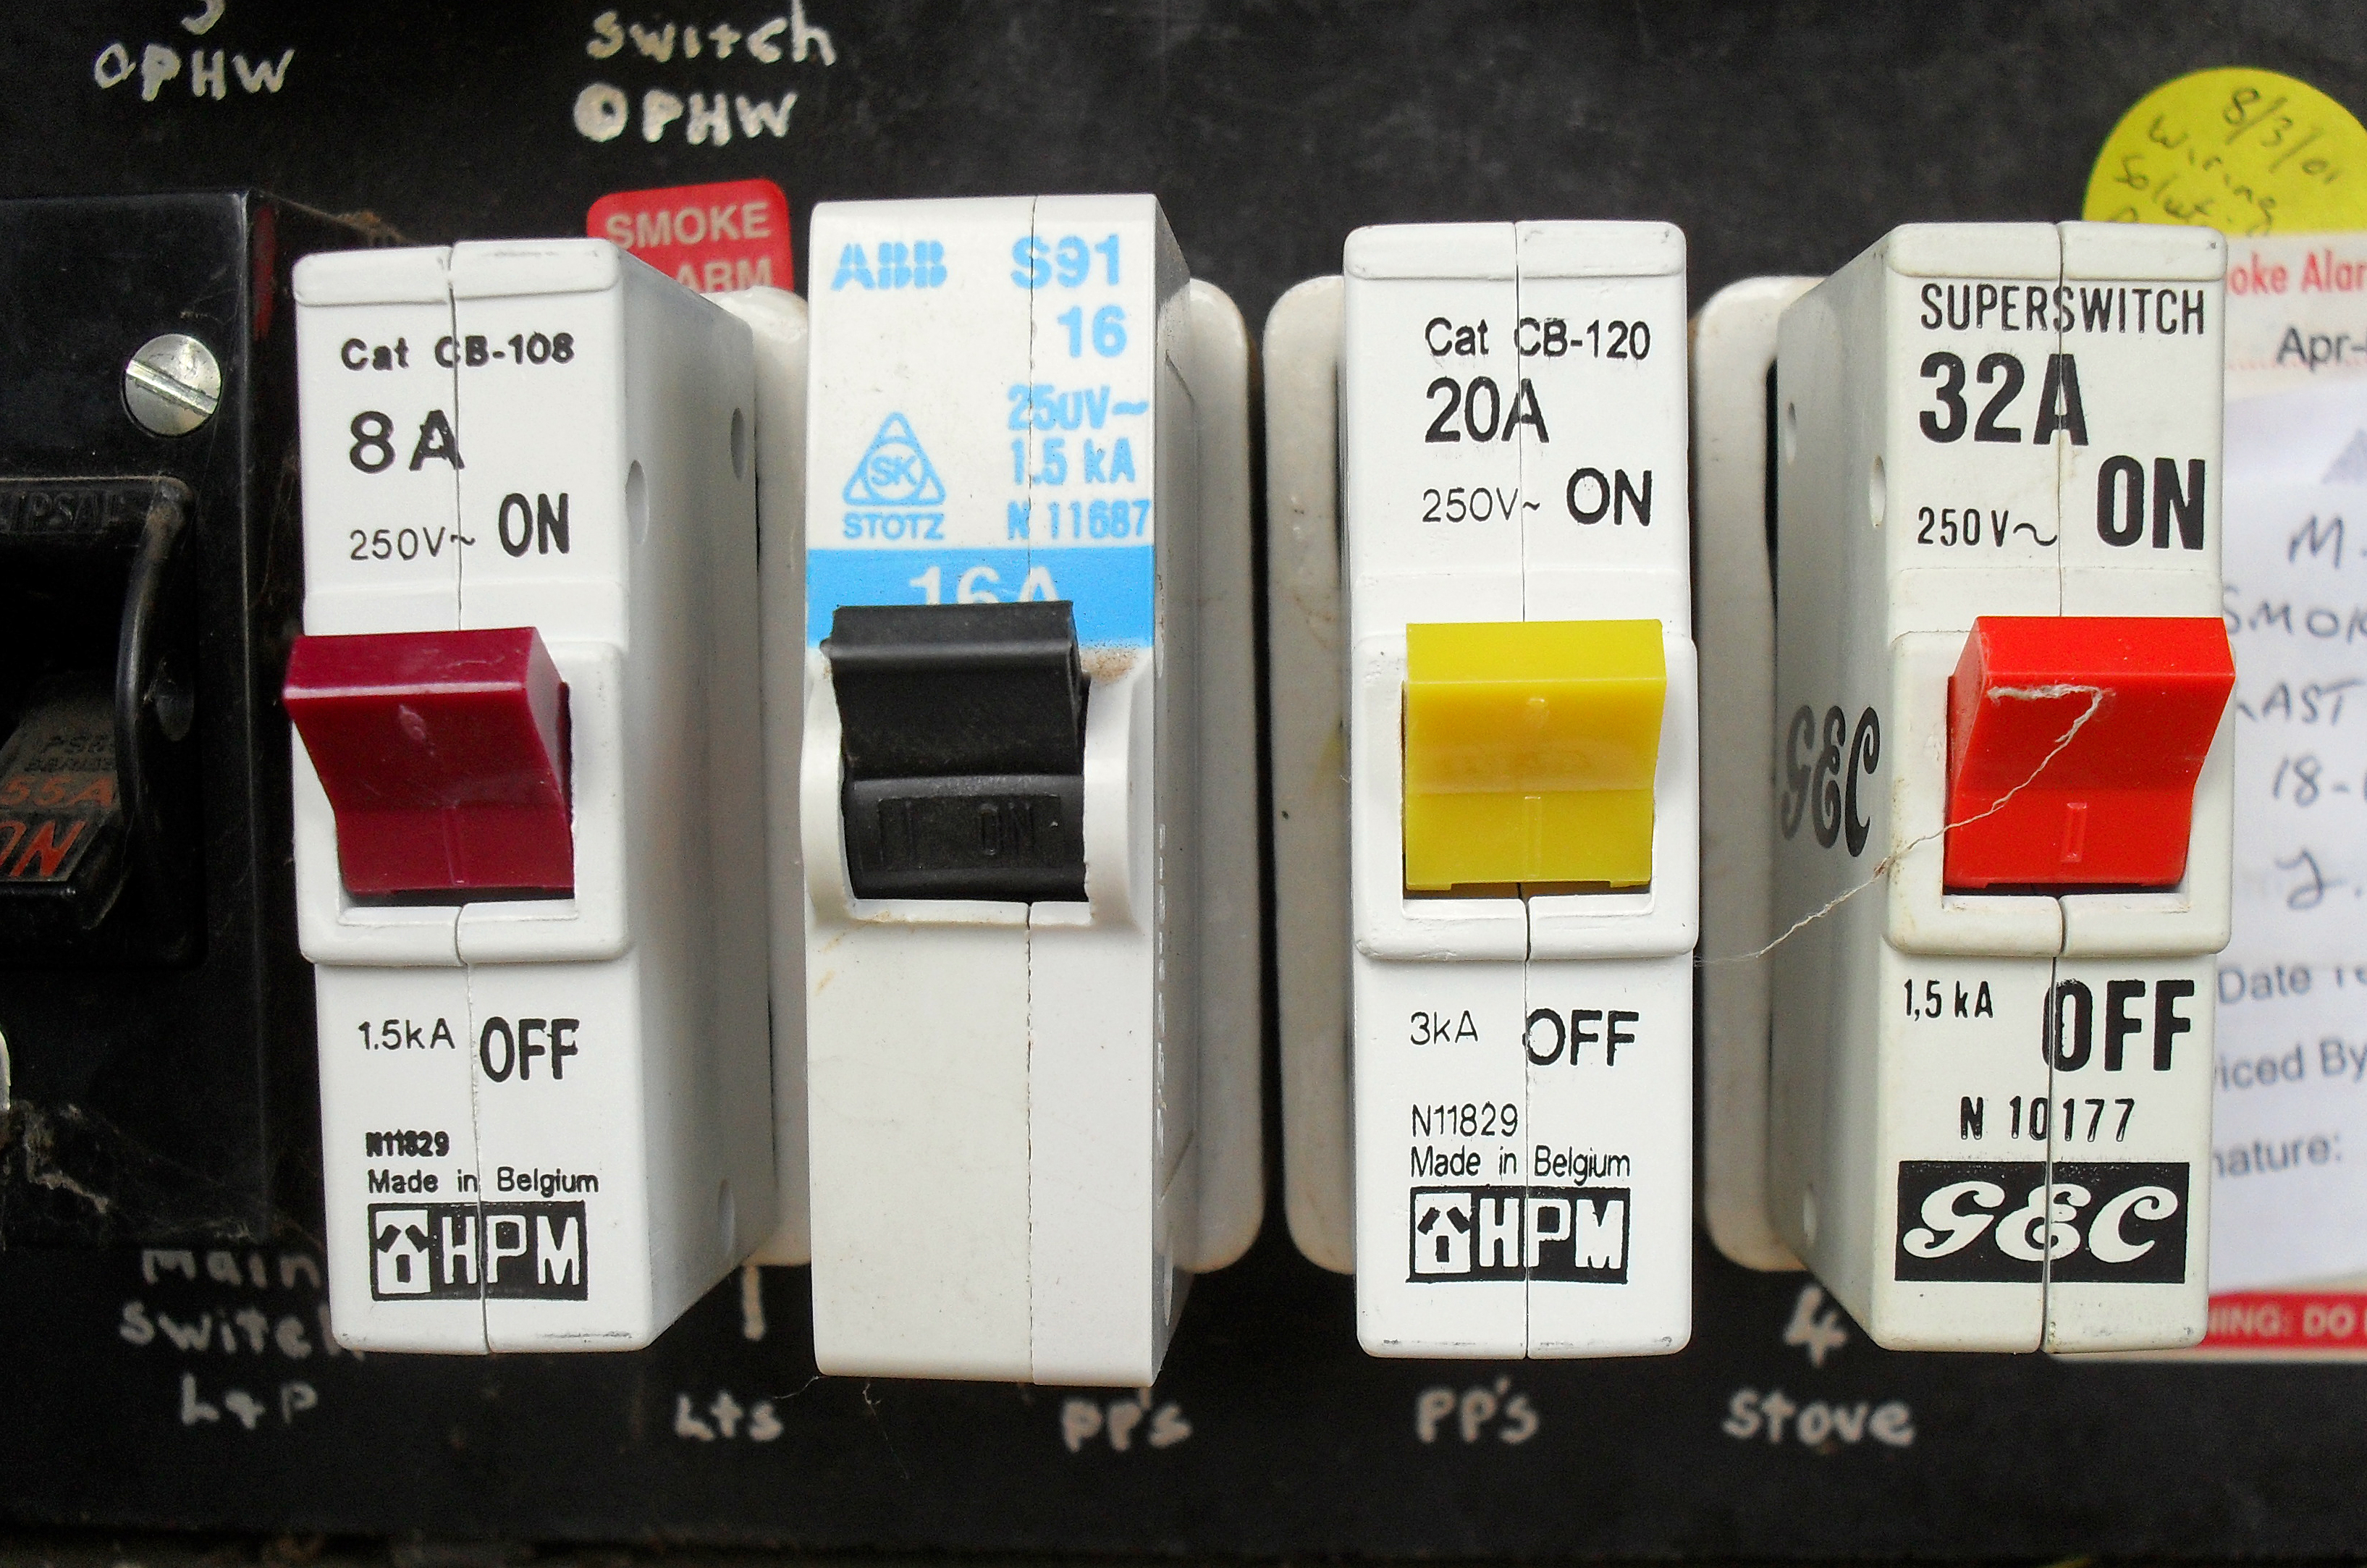 What Kind Of Meter Box Is This Page 1 Types Car Fuse Boxes Same As These Ones Http Uploadwikimediaorg Wikipedia Commons 7 75 Four Pole Circuit Breakers Fitted In A